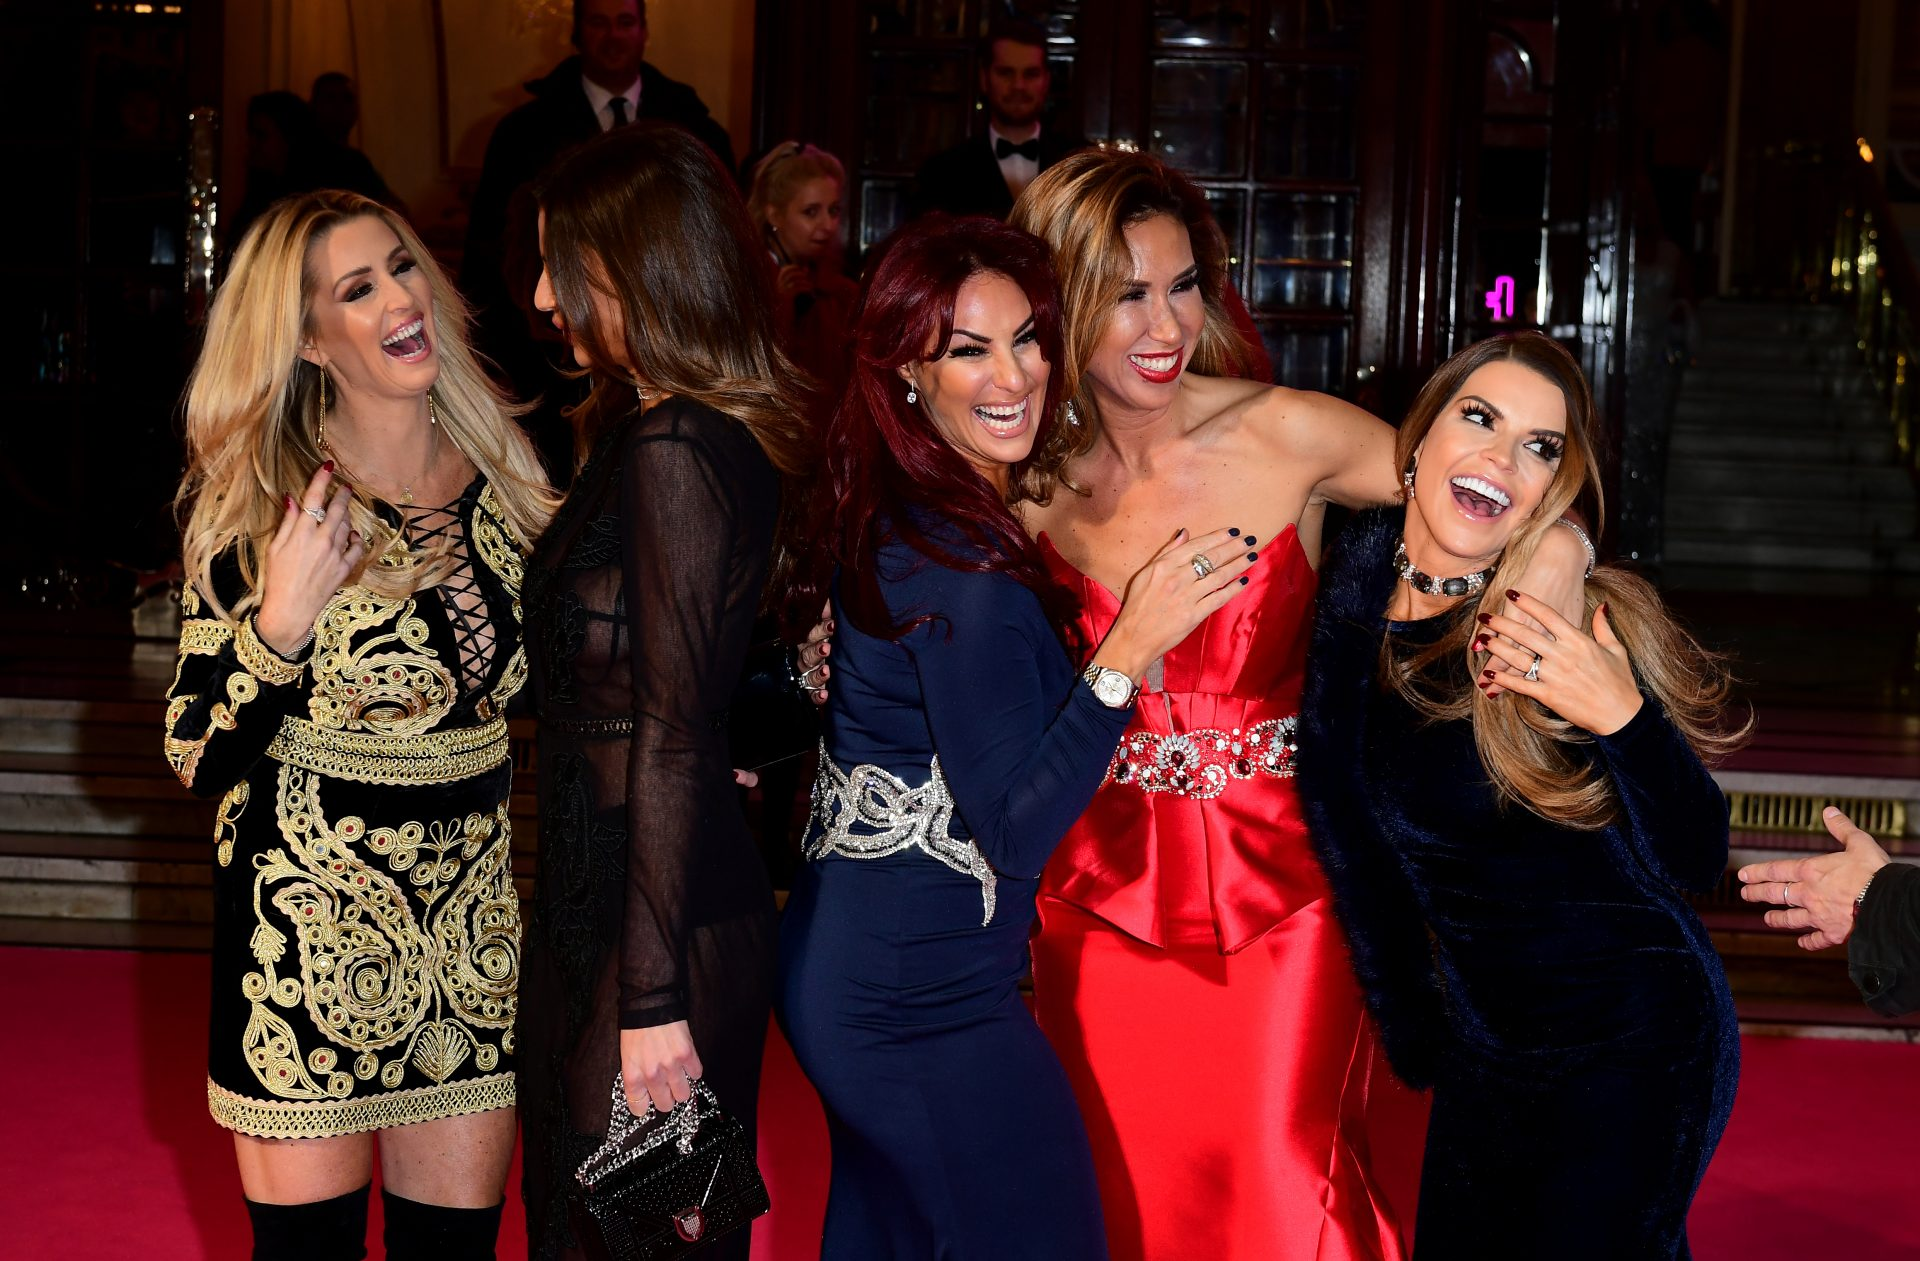 The Real Housewives of Cheshire cast Leanne Brown, Misse Beqiri, Lauren Simon, Ampika Pickston and Tanya Bardsley attending the ITV Gala at the London Palladium. Credit: Ian West/PA Archive/PA Images